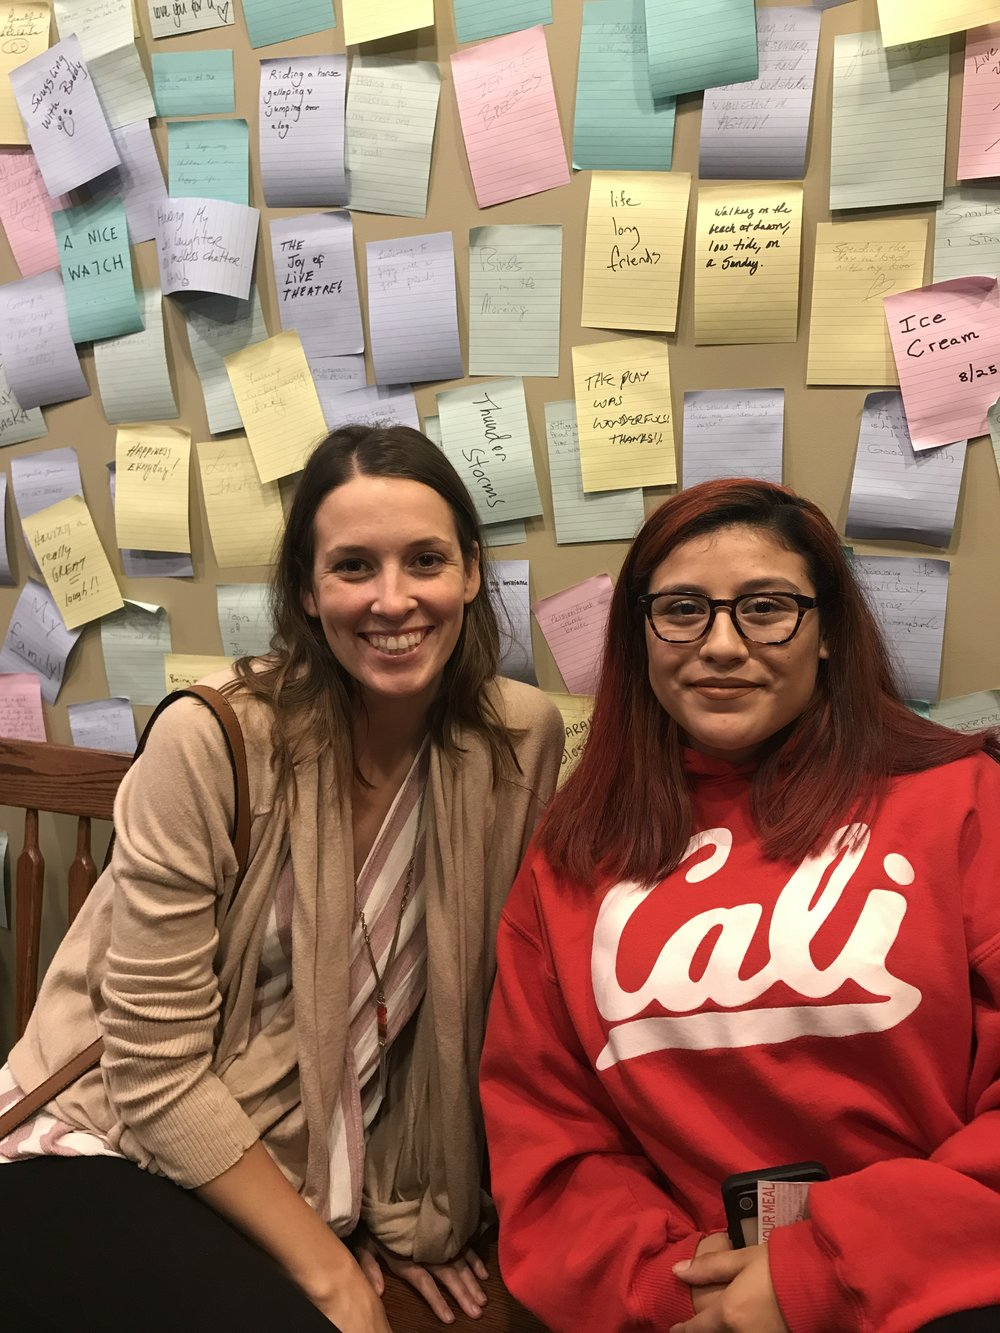 An image of scholar Alicia with her mentor, Keri. They are sitting in front of a wall full of posit-it notes.